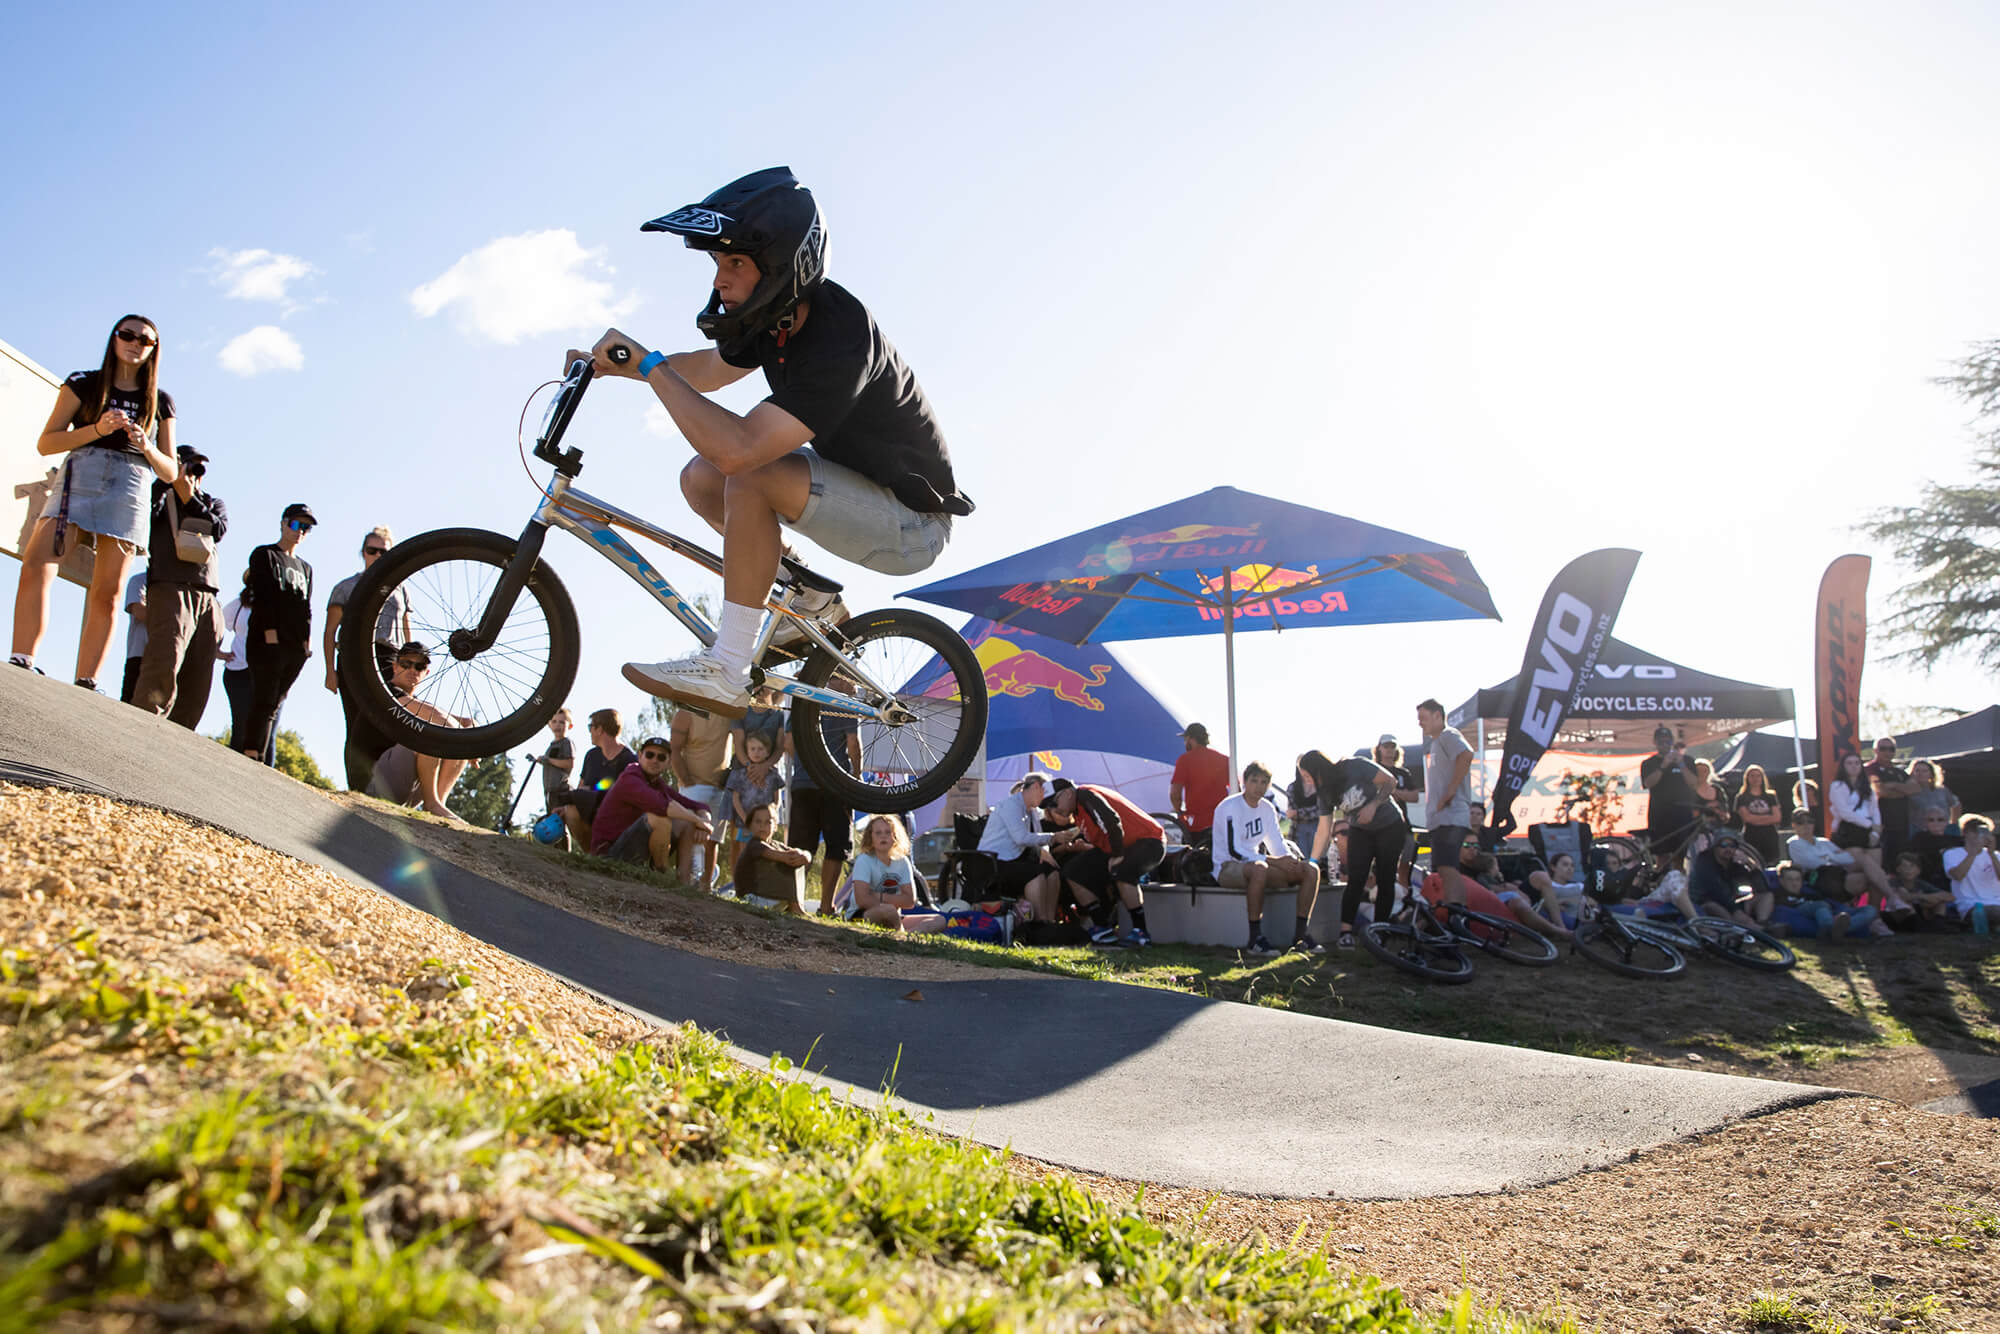 Red Bull Pump Track Cambridge NZ 2021 - Graeme Murray - Bennett Greenough